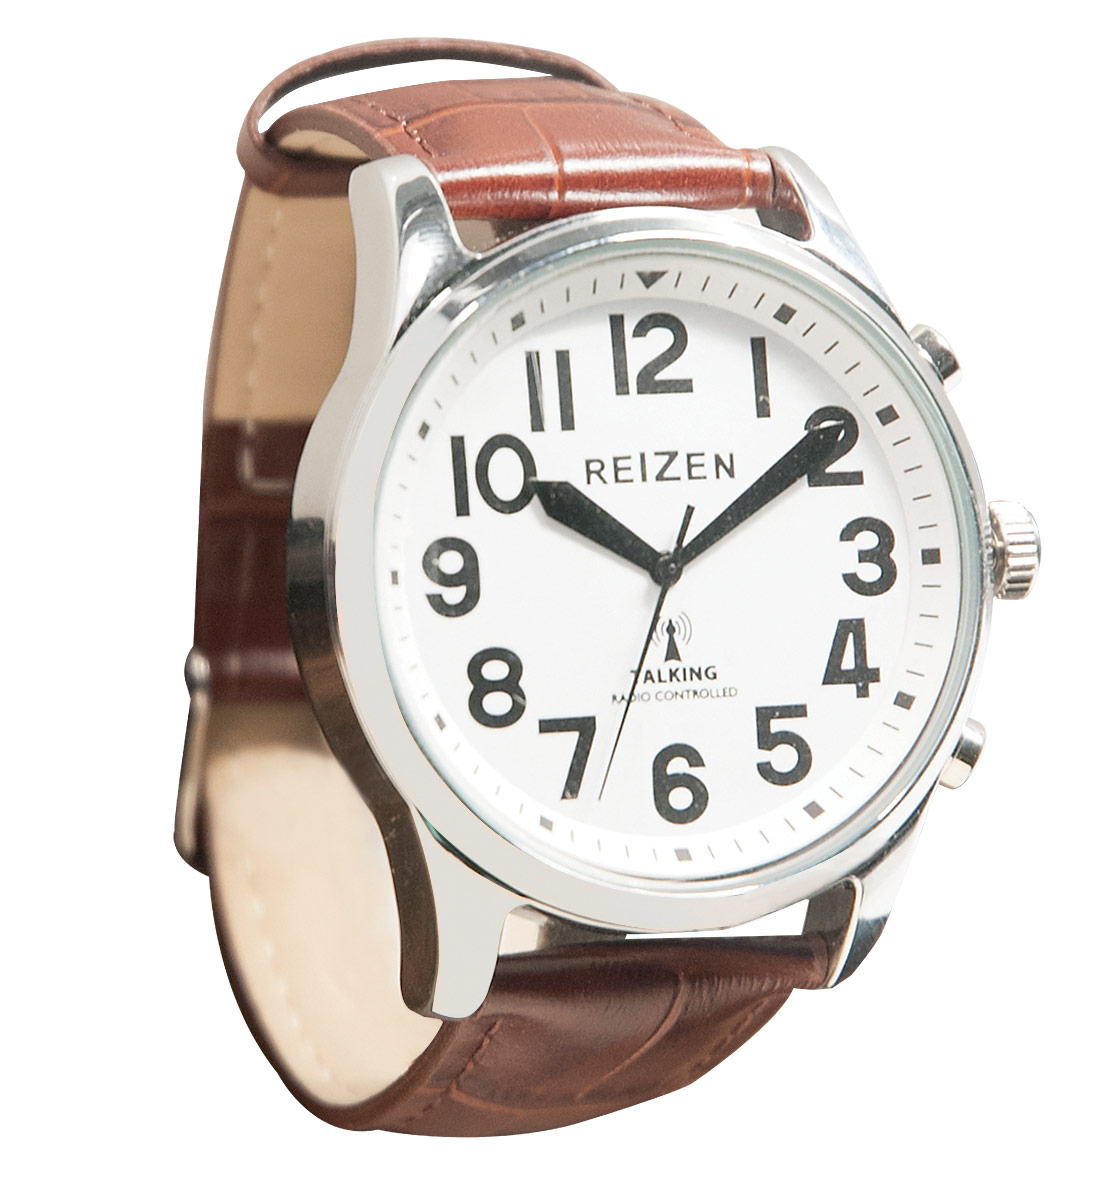 Reizen Big Face Talking Atomic Watch - Embossed Brown Leather Band